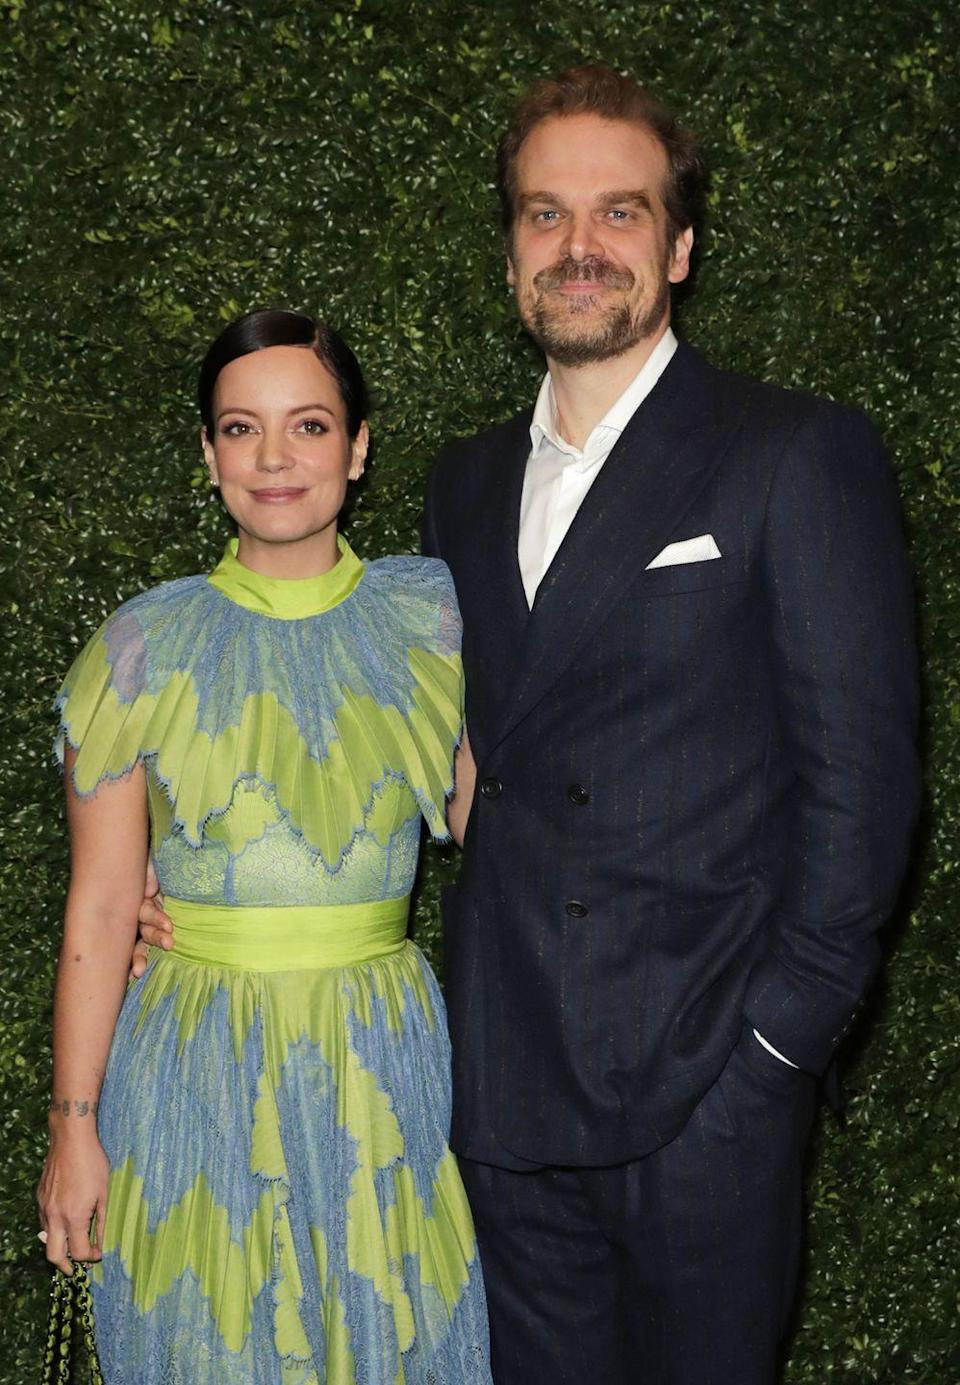 """<p>While the COVID-19 pandemic delayed countless weddings, Lily Allen and David Harbour were determined to say """"I do"""" and got <a href=""""https://people.com/tv/david-harbour-and-lily-allen-are-married/"""" rel=""""nofollow noopener"""" target=""""_blank"""" data-ylk=""""slk:married in Las Vegas on September 7, 2020"""" class=""""link rapid-noclick-resp"""">married in Las Vegas on September 7, 2020</a>. They shared photos of their Elvis-themed nuptials <a href=""""https://www.instagram.com/p/CE7KngMnprf/?"""" rel=""""nofollow noopener"""" target=""""_blank"""" data-ylk=""""slk:on Instagram"""" class=""""link rapid-noclick-resp"""">on Instagram</a> and followed the event with an In-N-Out meal.</p>"""